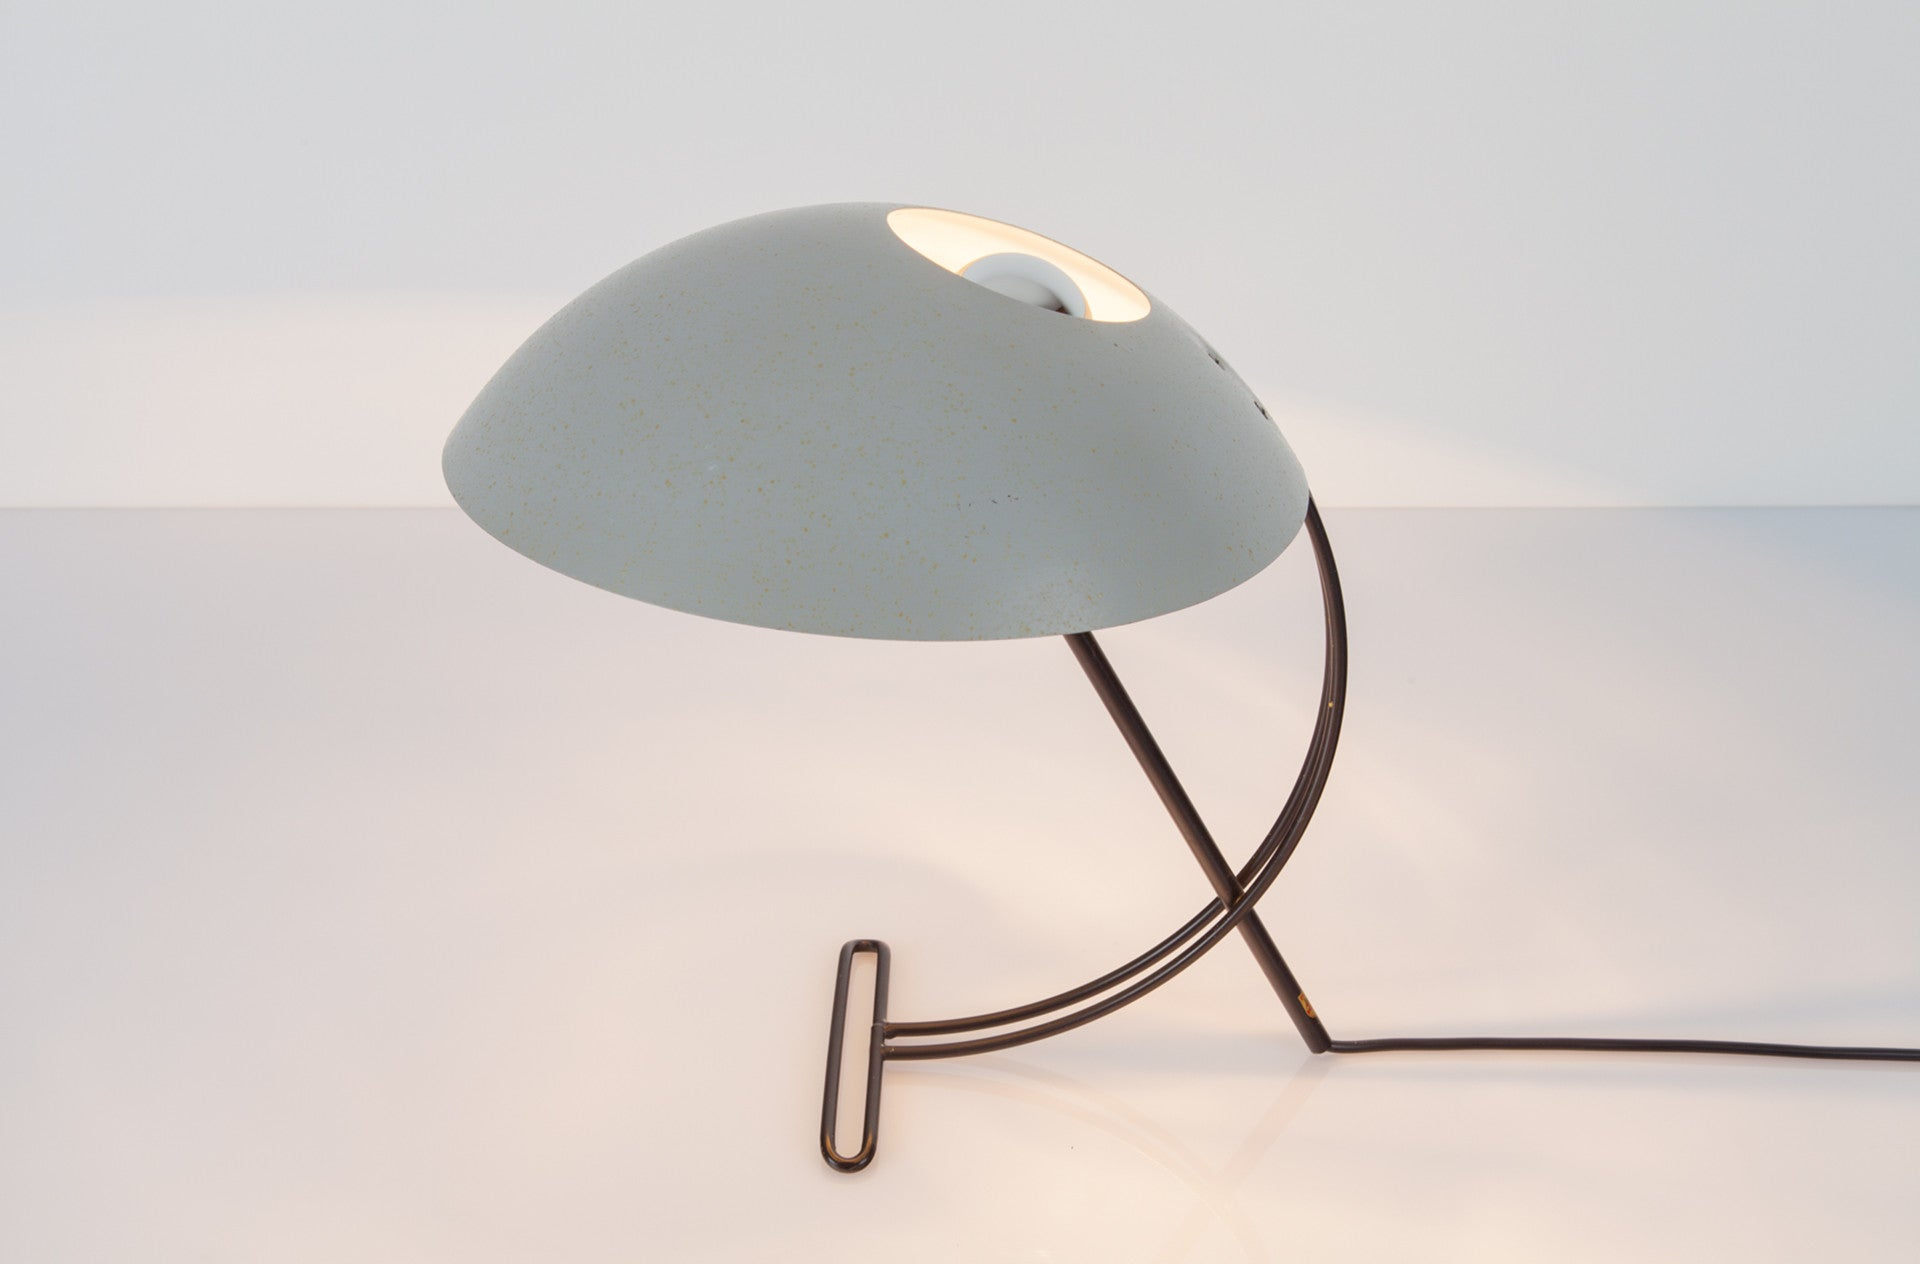 NB100 desk lamp by Louis Christiaan Kalff